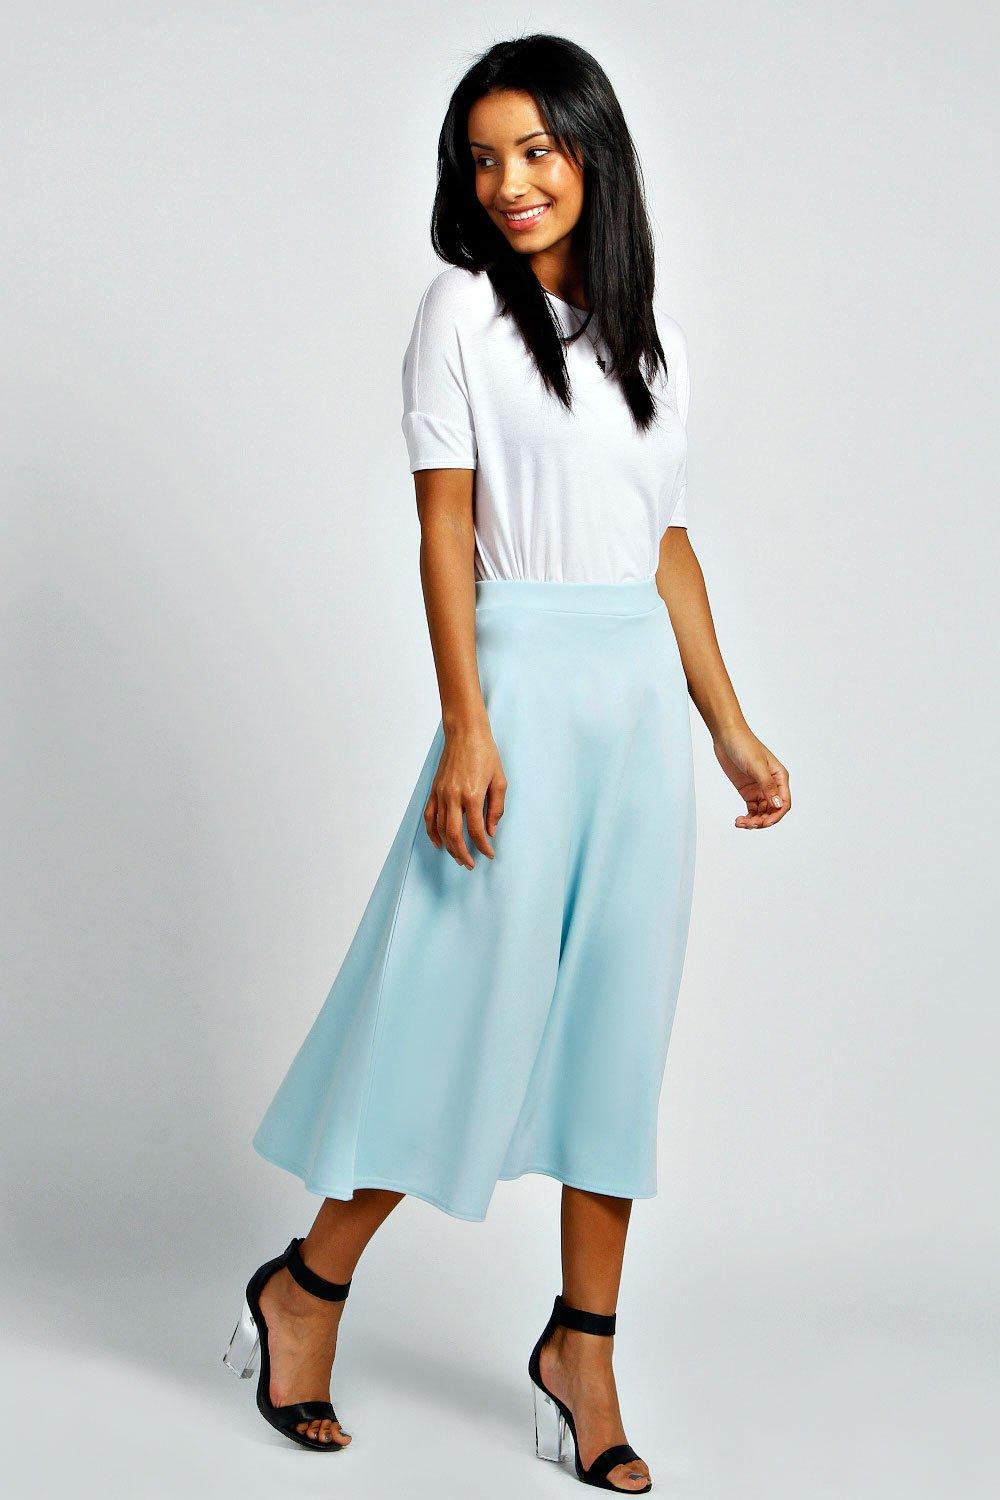 boohoo Arianna Full Circle Midi Skirt - blue